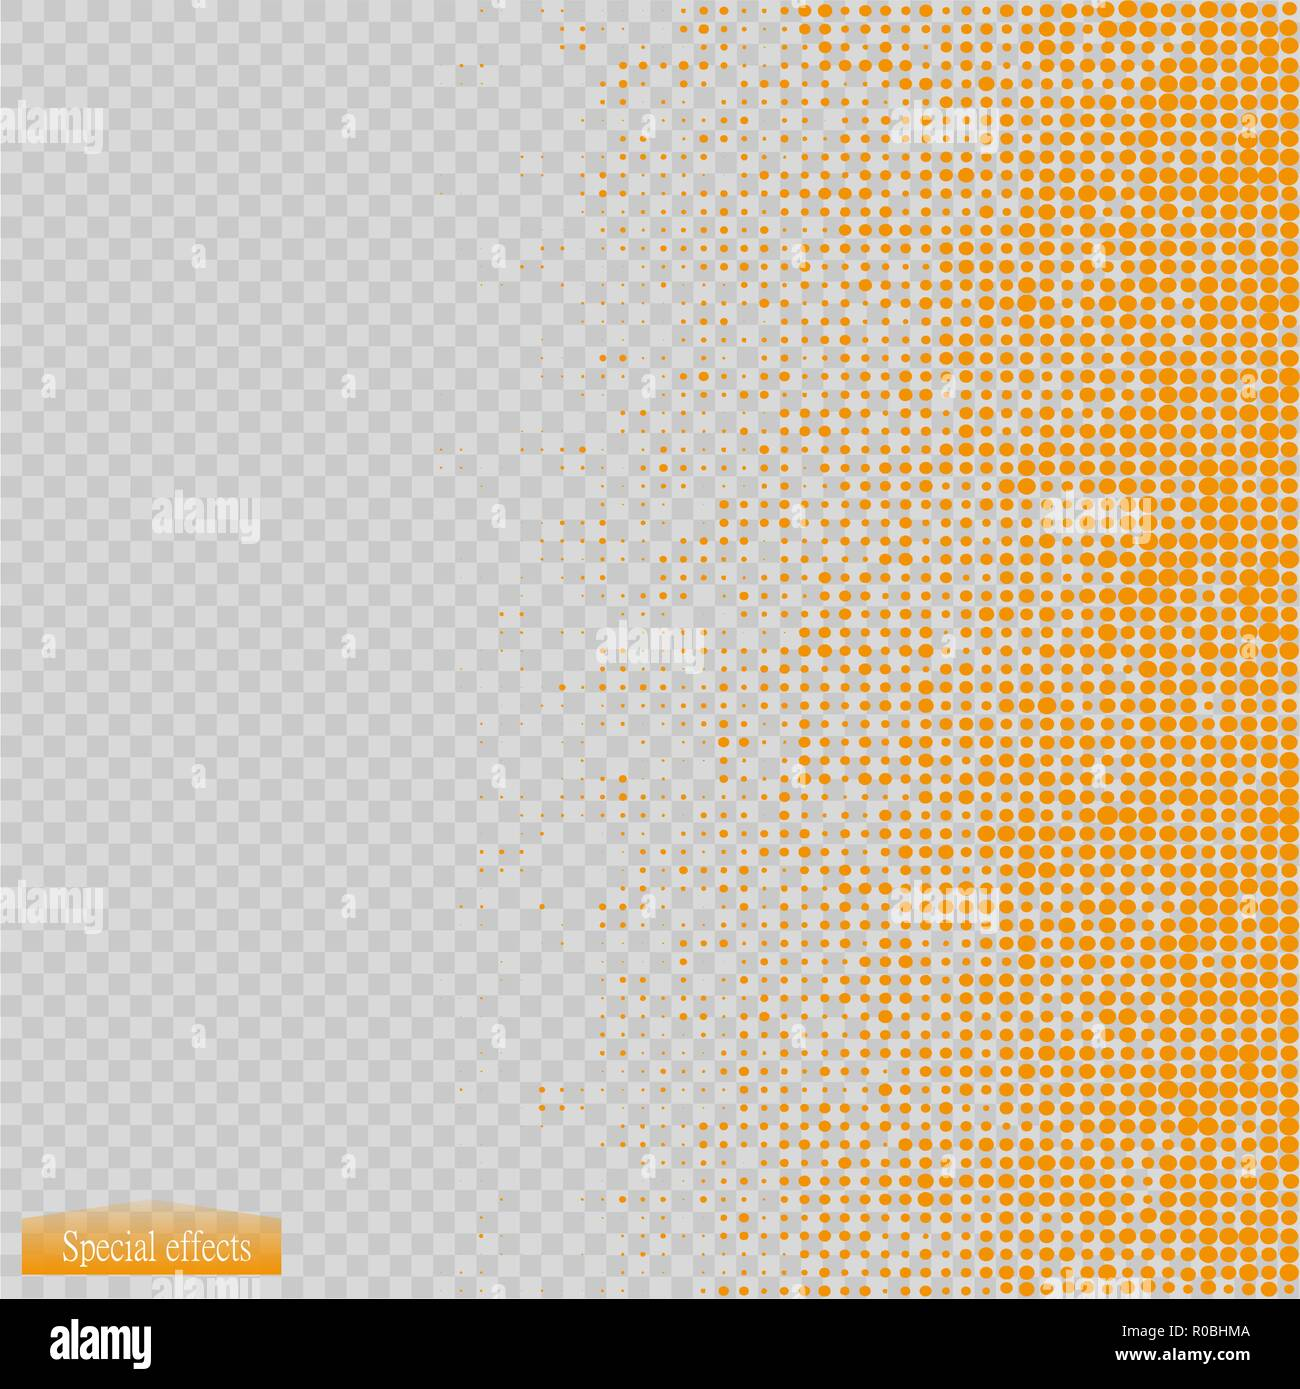 Halftone pattern vector.blue the circles to the background squares - Stock Image